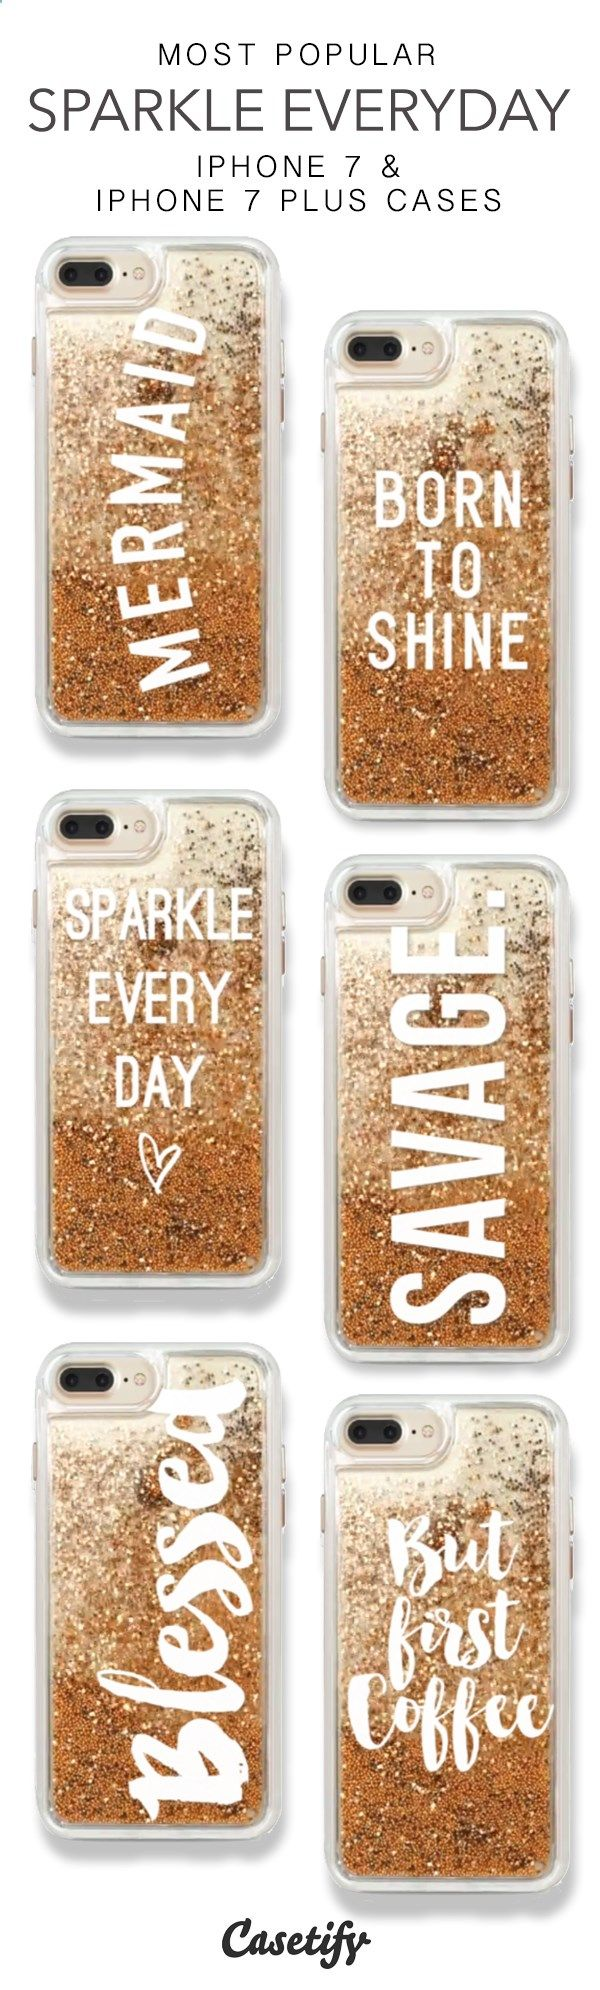 Phone Cases - Most Popular Sparkle Everyday iPhone 7 Cases & iPhone 7 Plus Cases. More glitter iPhone case here > www.casetify.com/...